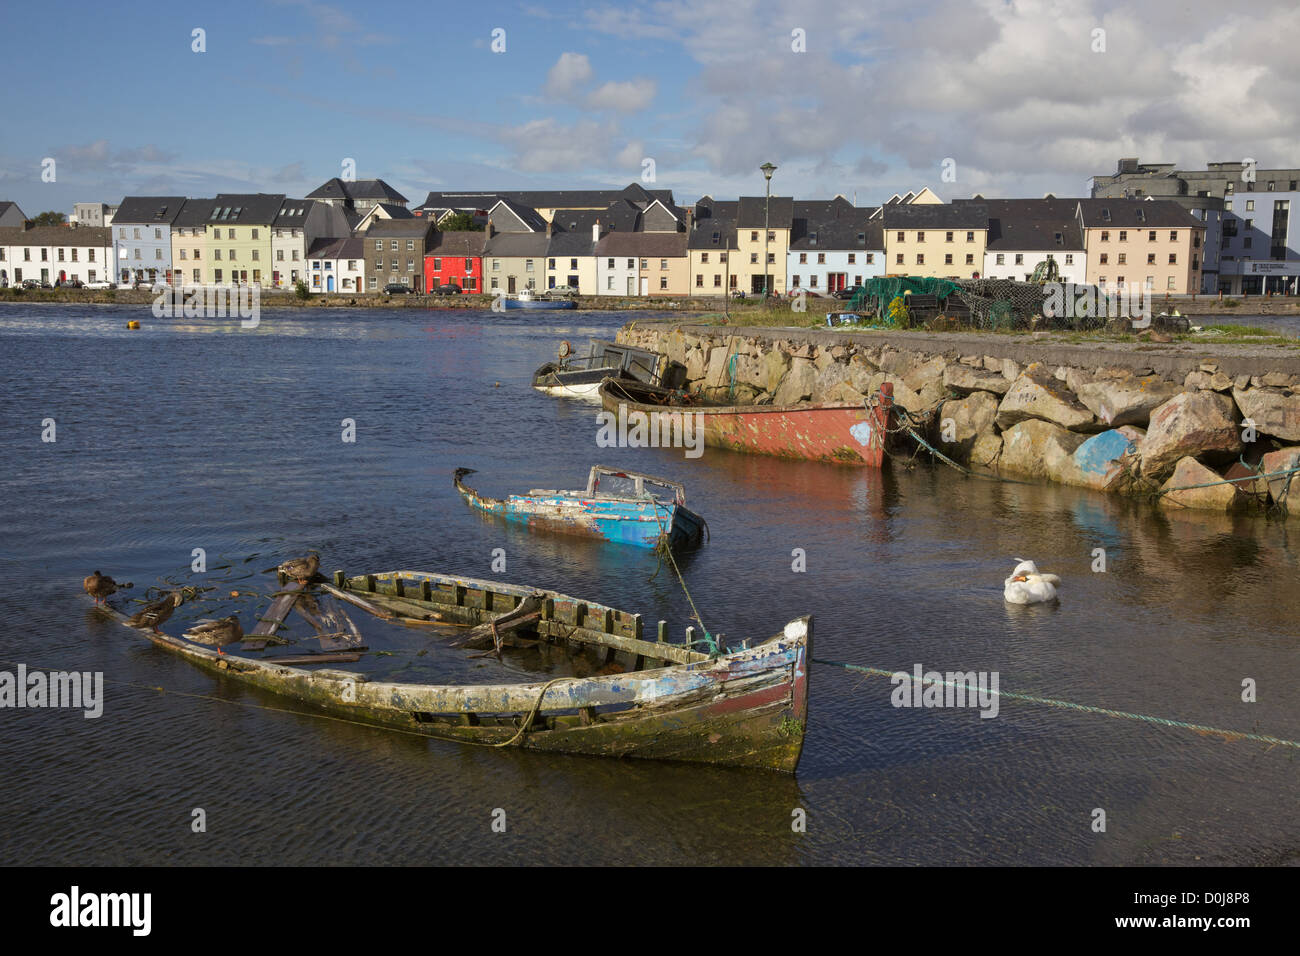 Boat graveyard in the Claddagh, Galway, Ireland. - Stock Image